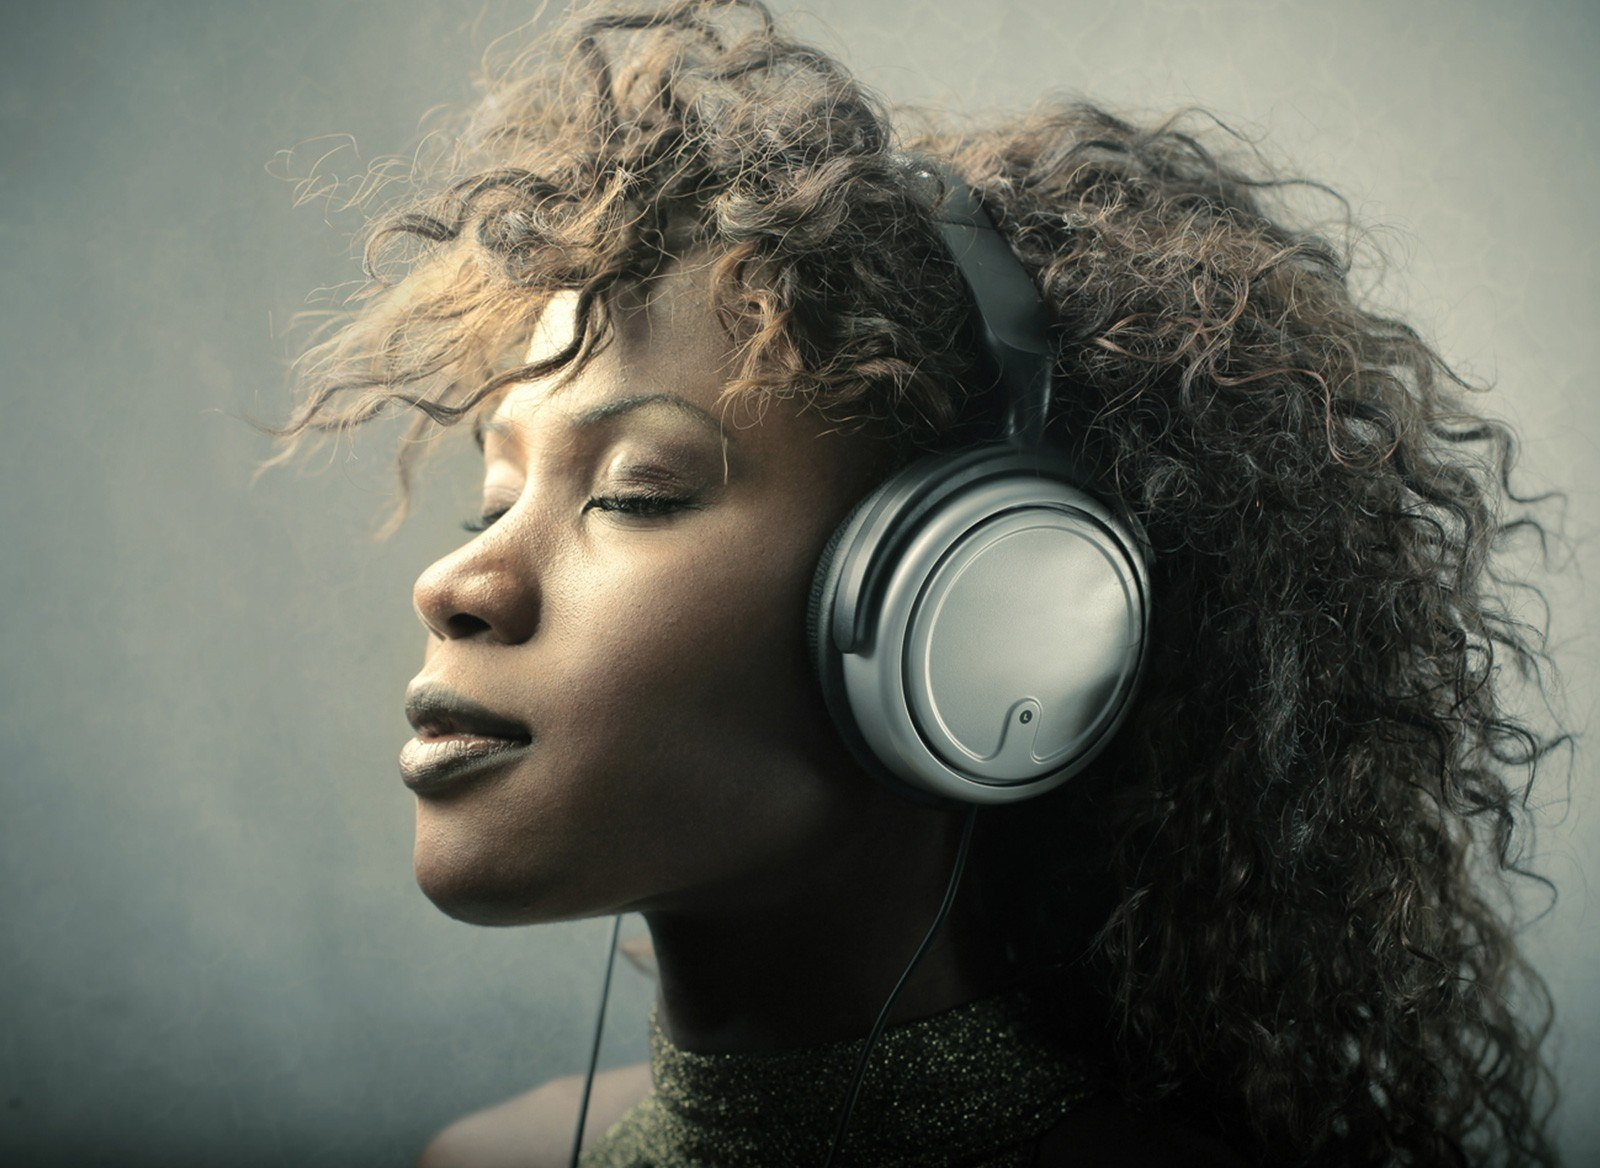 Medics Proves Music is Good for You